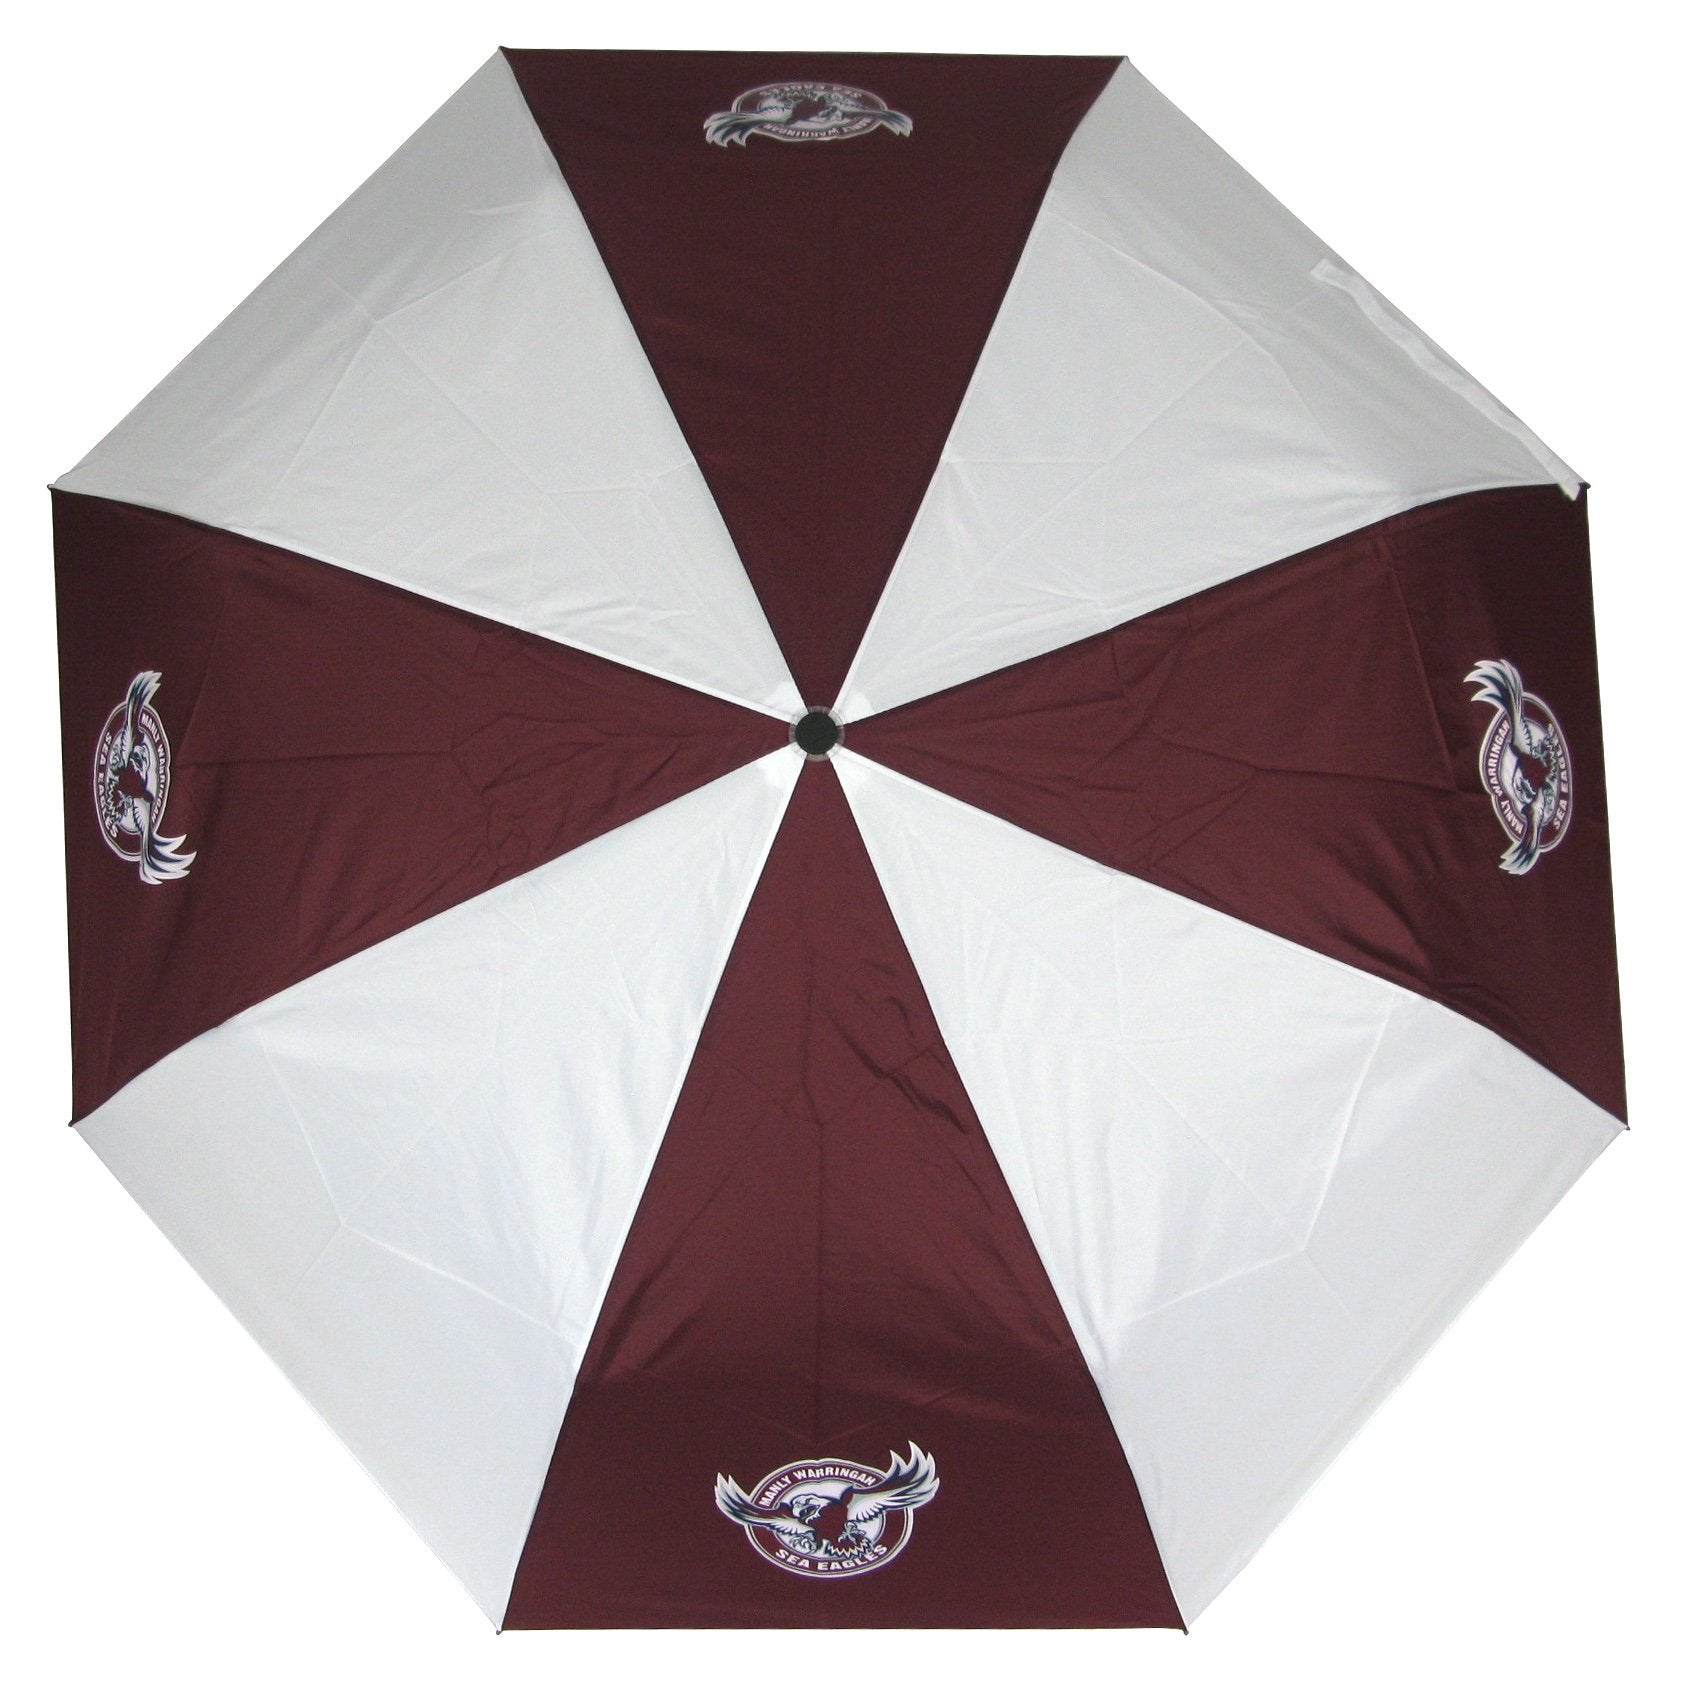 NRL Glovebox Umbrella Manly